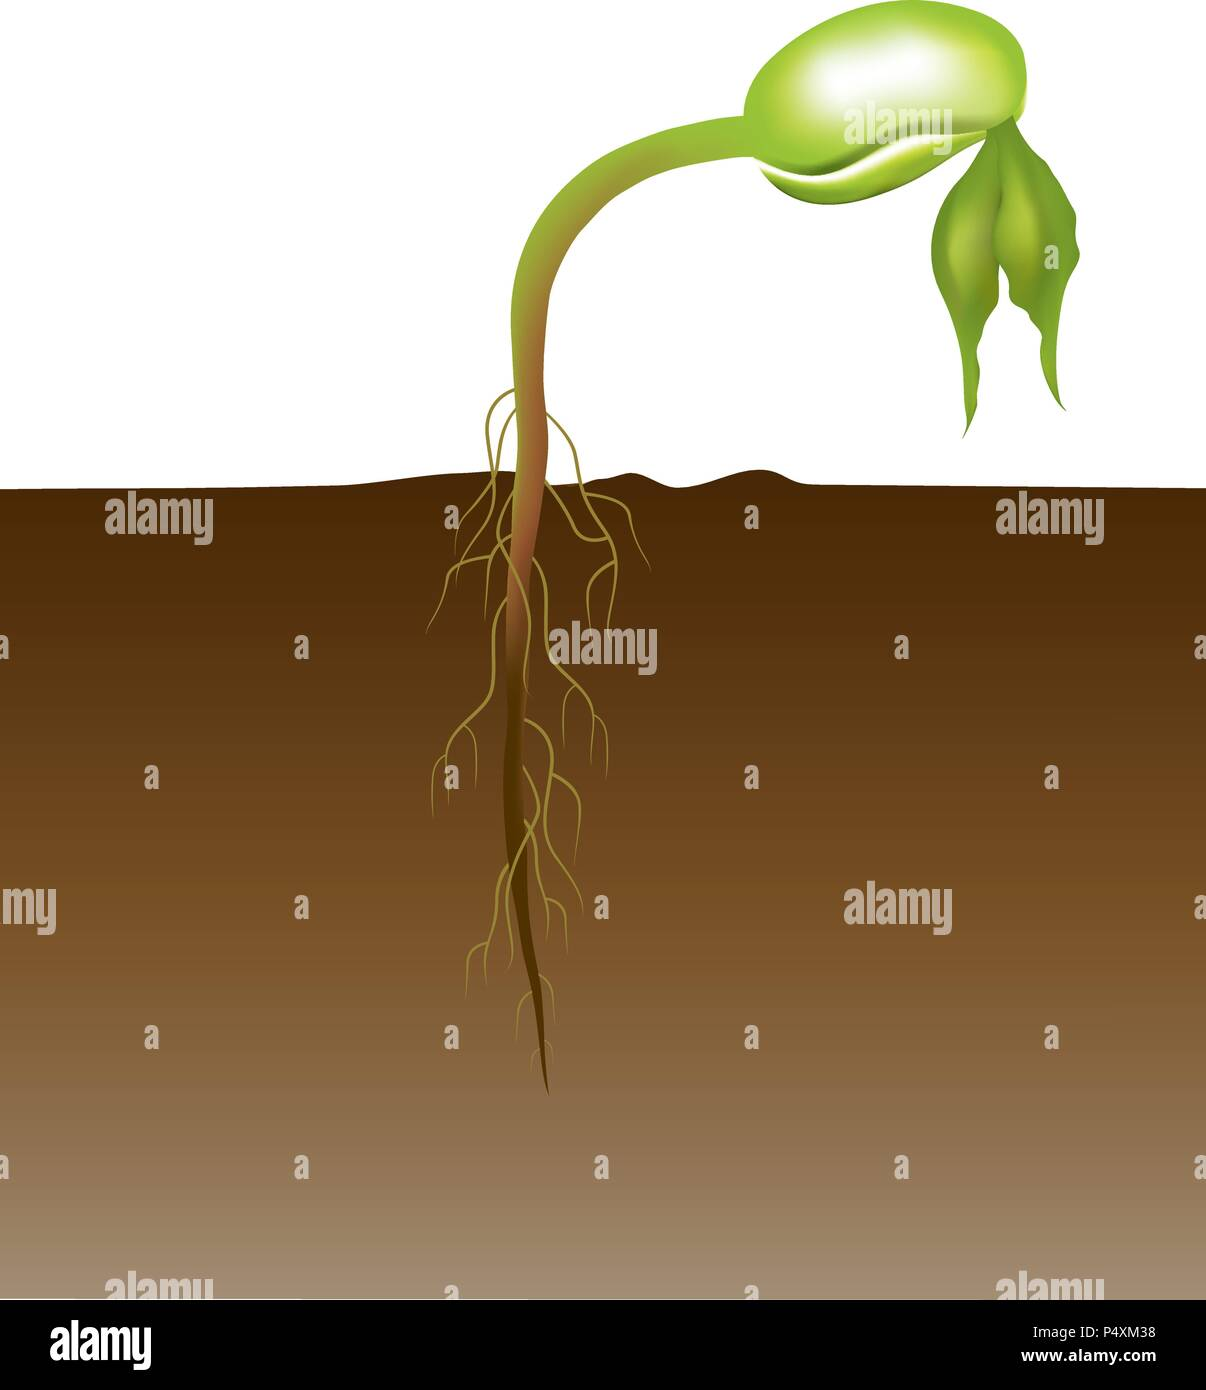 Seed germination is a process by which a seed embryo develops into a seedling. It involves the reactivation of the metabolic pathways that lead to gro - Stock Vector